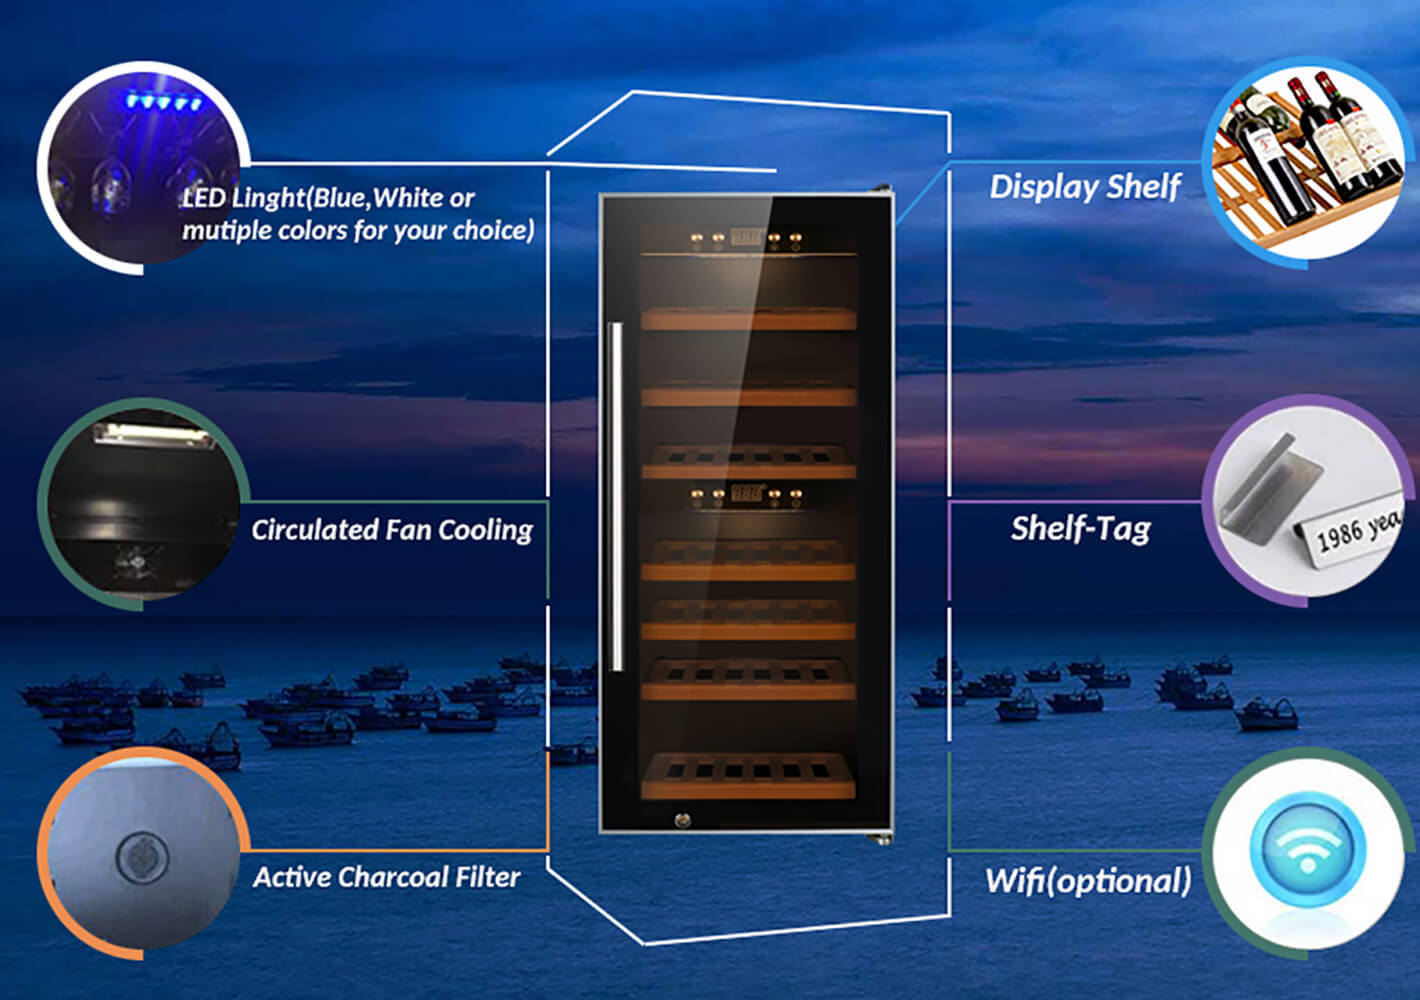 online wine bottle fridge double product for indoor-2